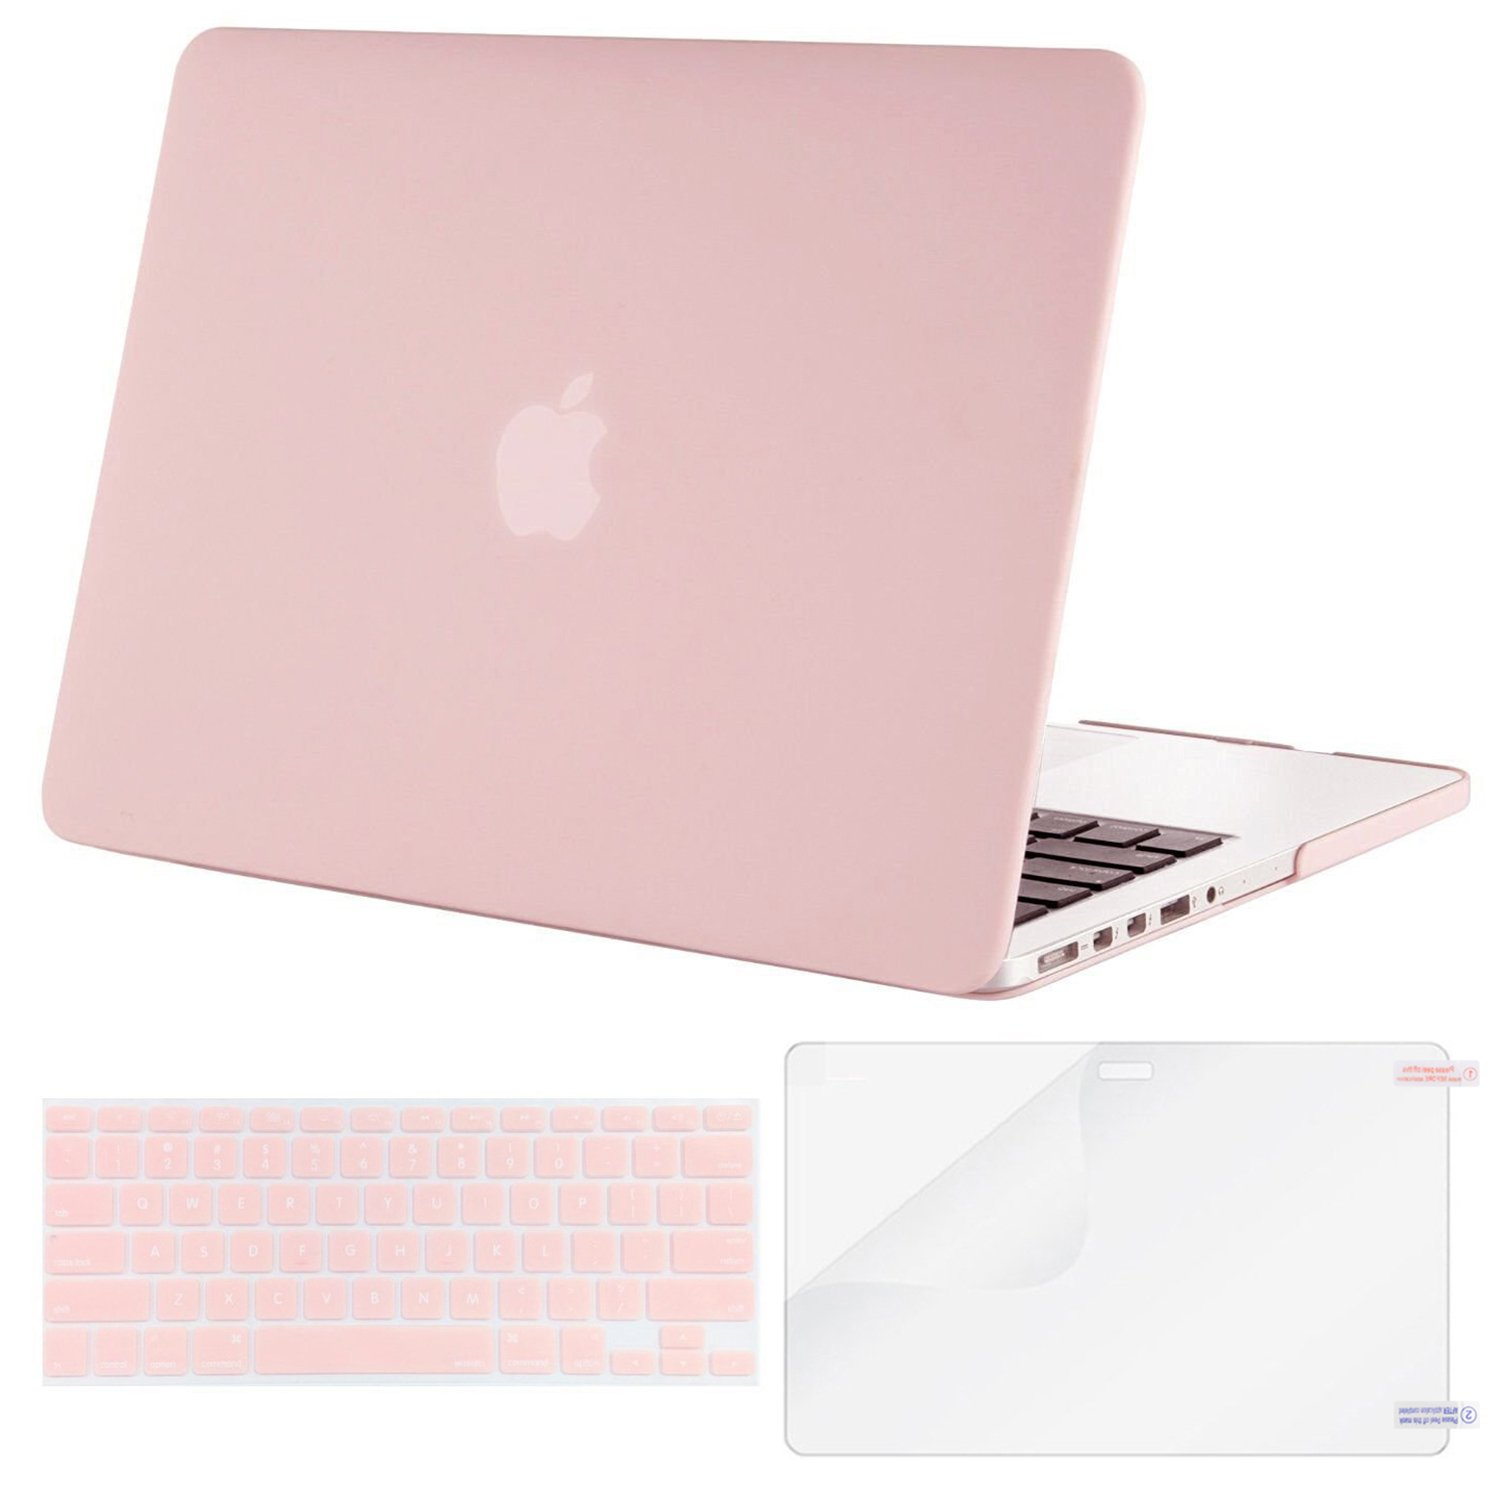 MOSISO Plastic Hard Case with Keyboard Cover with Screen Protector Only Compatible MacBook Pro (No USB-C) Retina 13 Inch (W/O CD-ROM)(A1502/A1425), Release 2015/2014/2013/end 2012, Rose Quartz